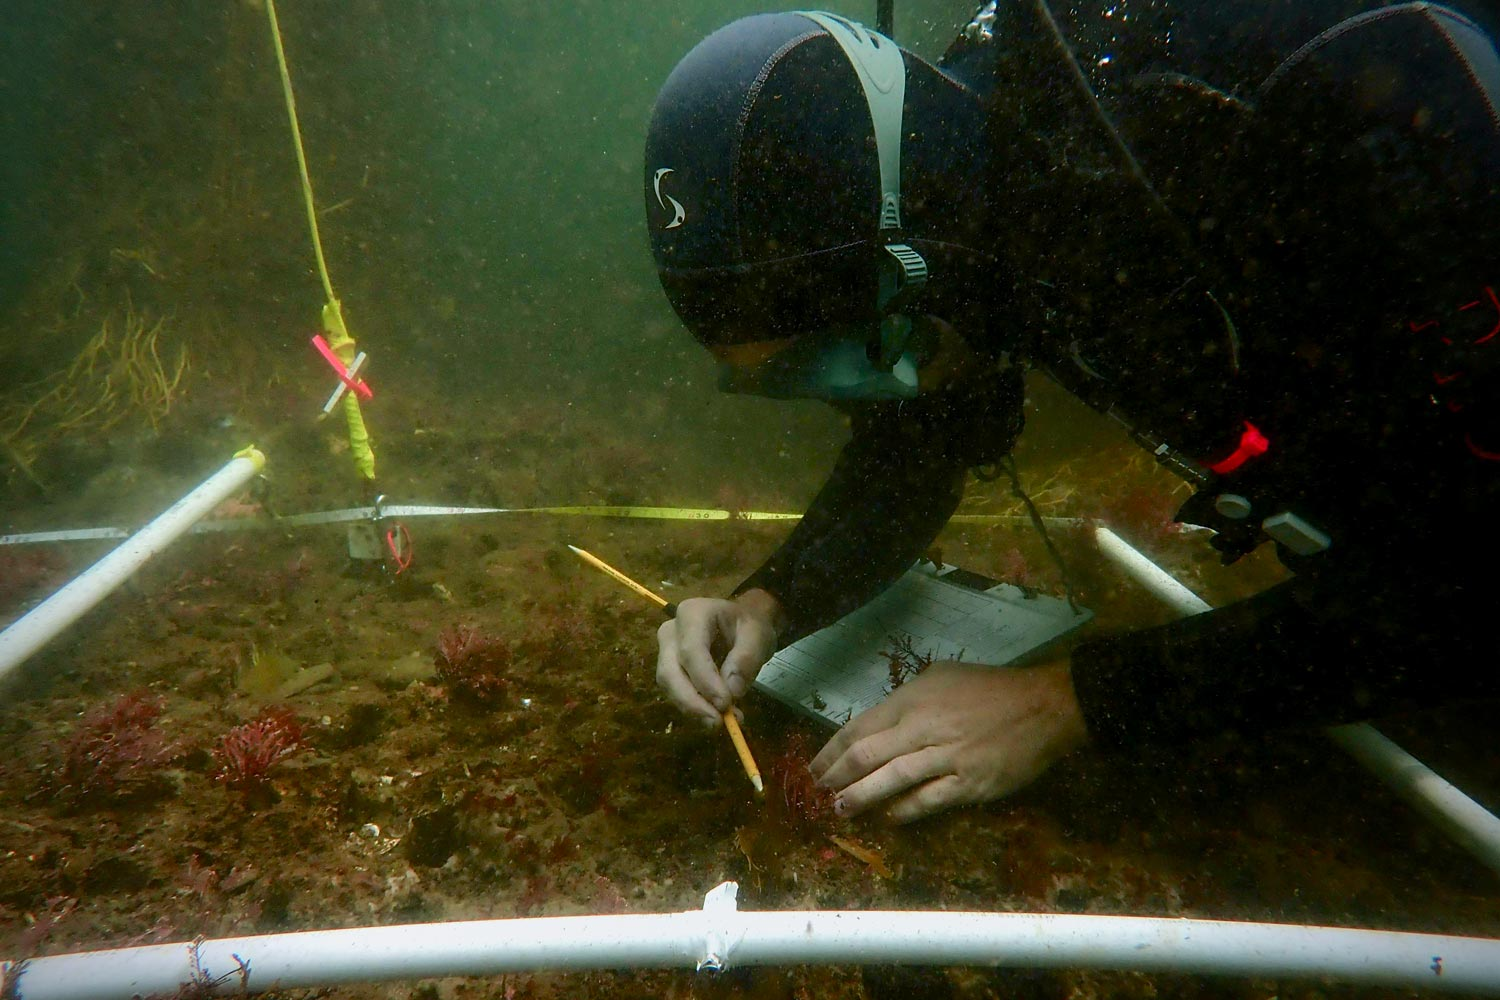 A diver identifies and measures seaweed on the ocean floor during the experiment.